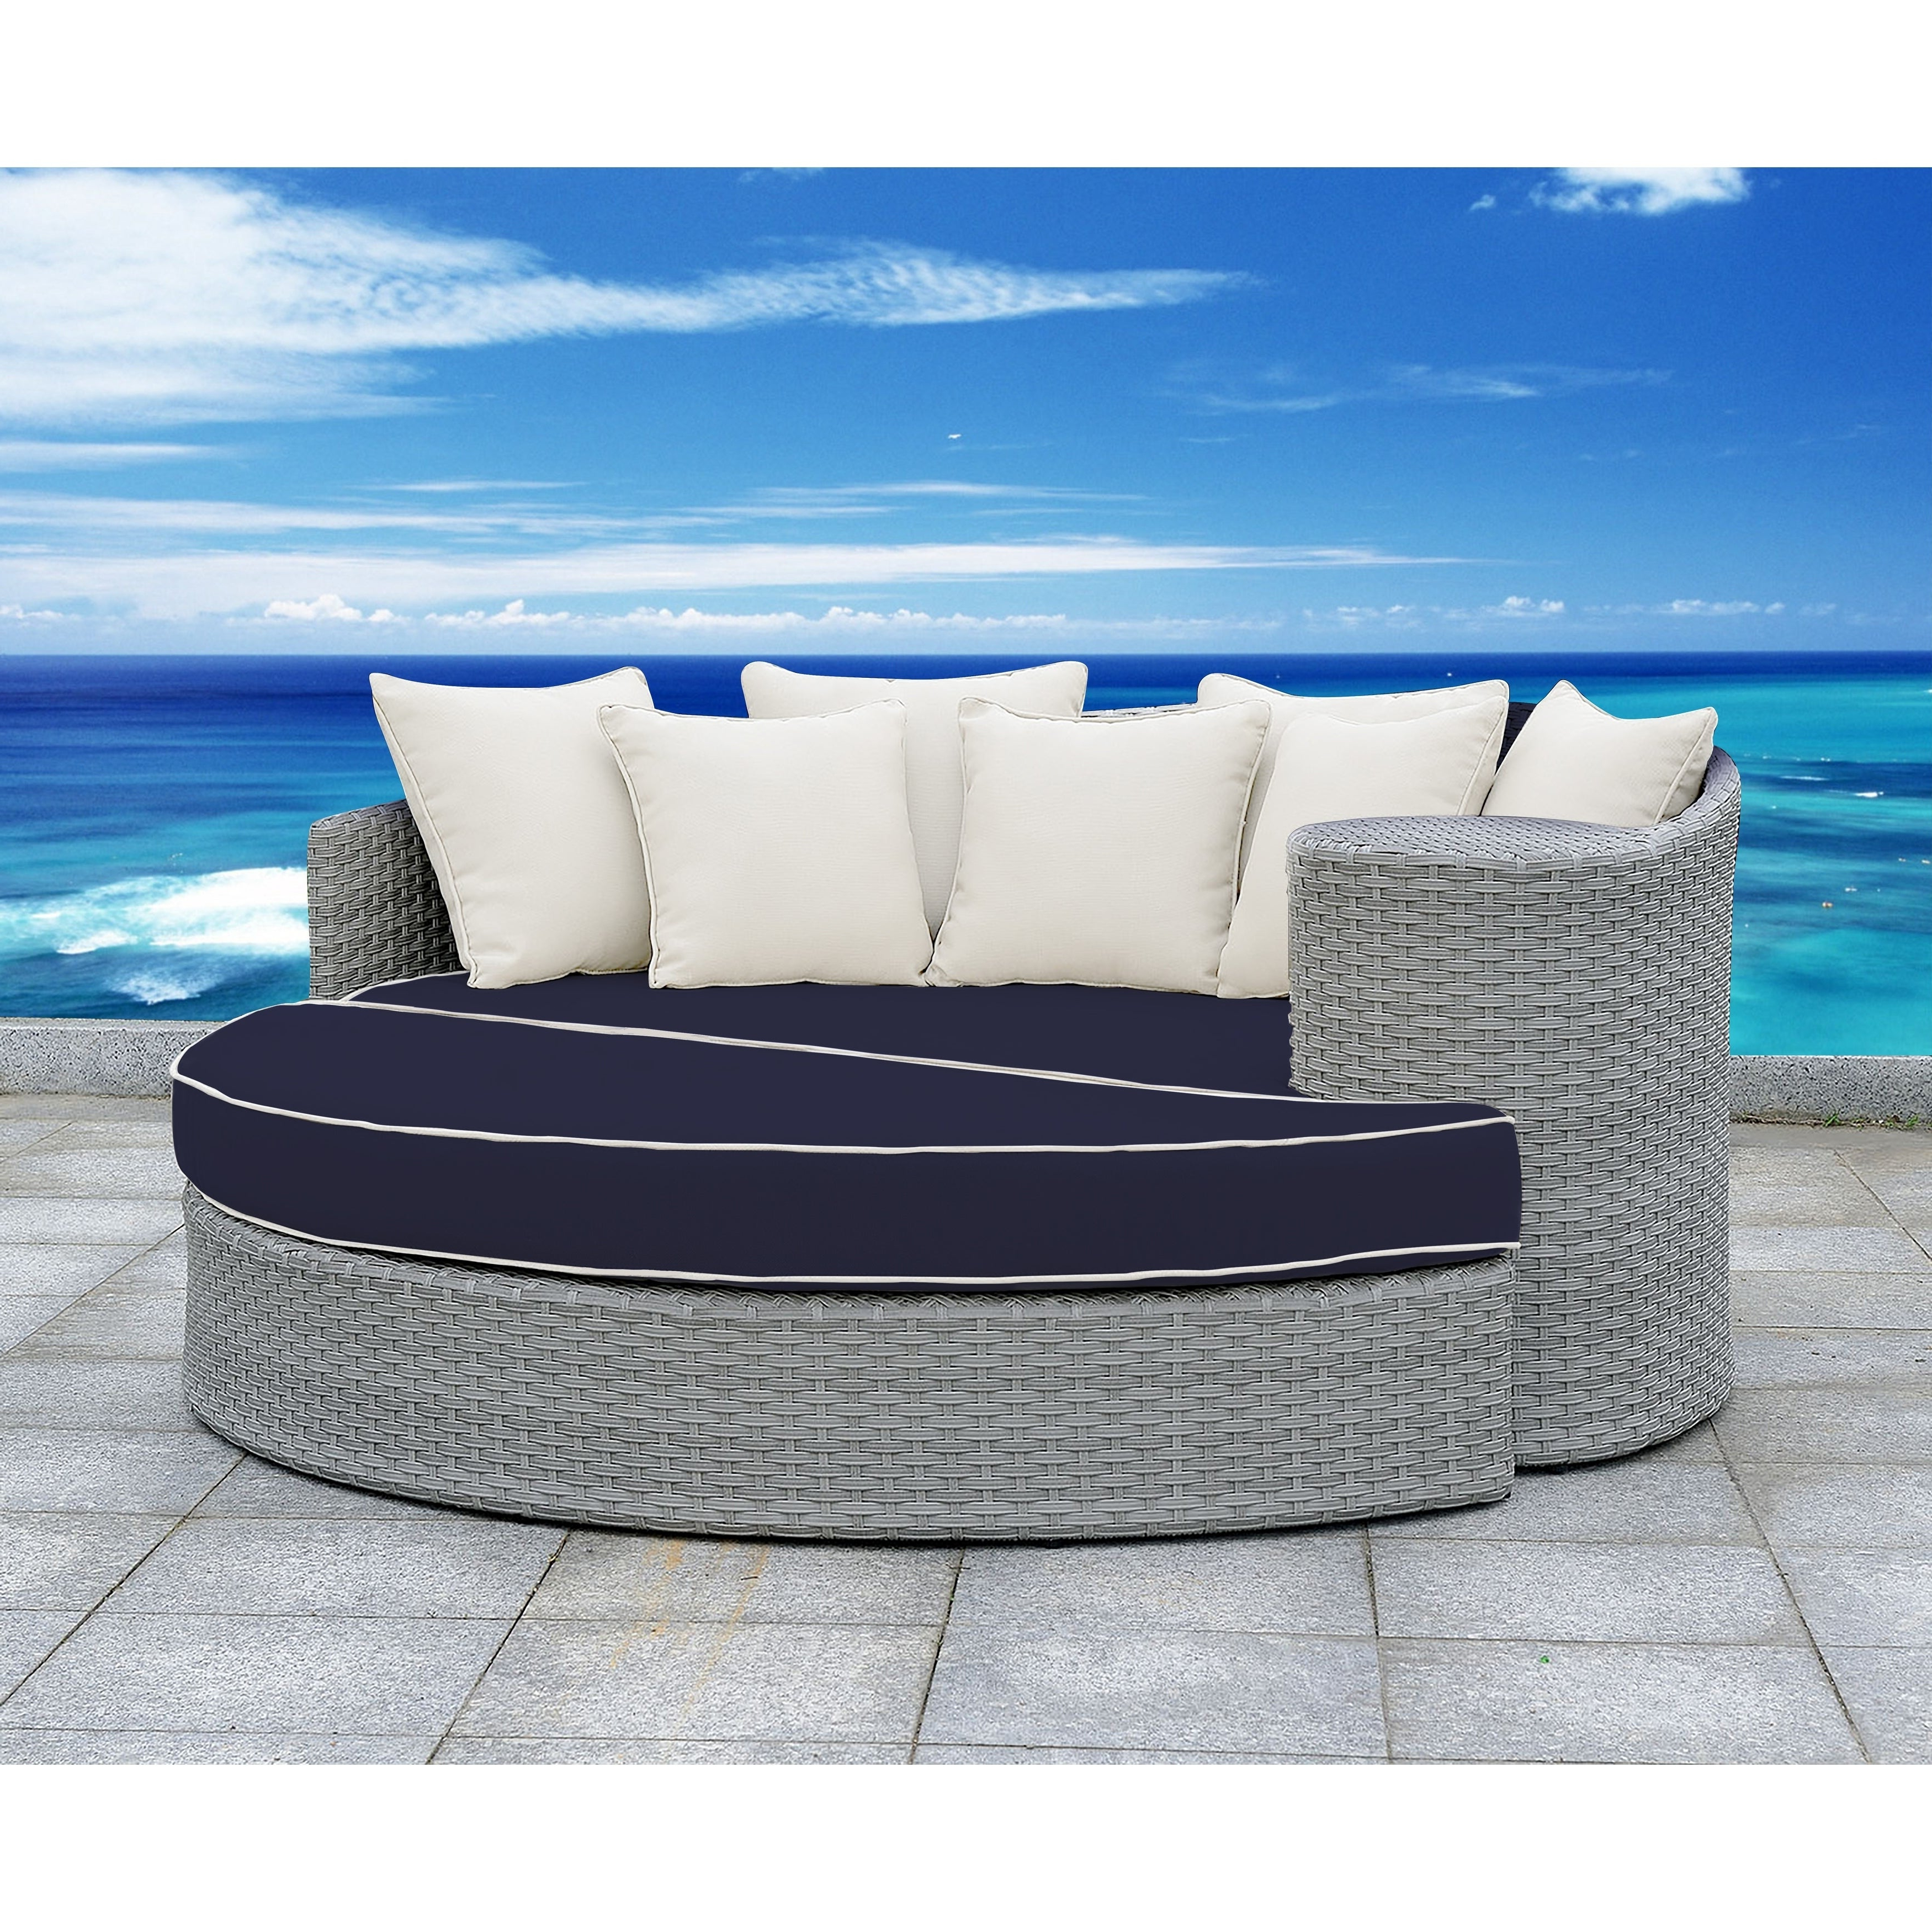 Well Known Falmouth Patio Daybeds With Cushions Intended For Solis Gratia 2 Piece Daybed Patio Set – Navy Cushions, White Pillows (View 17 of 20)